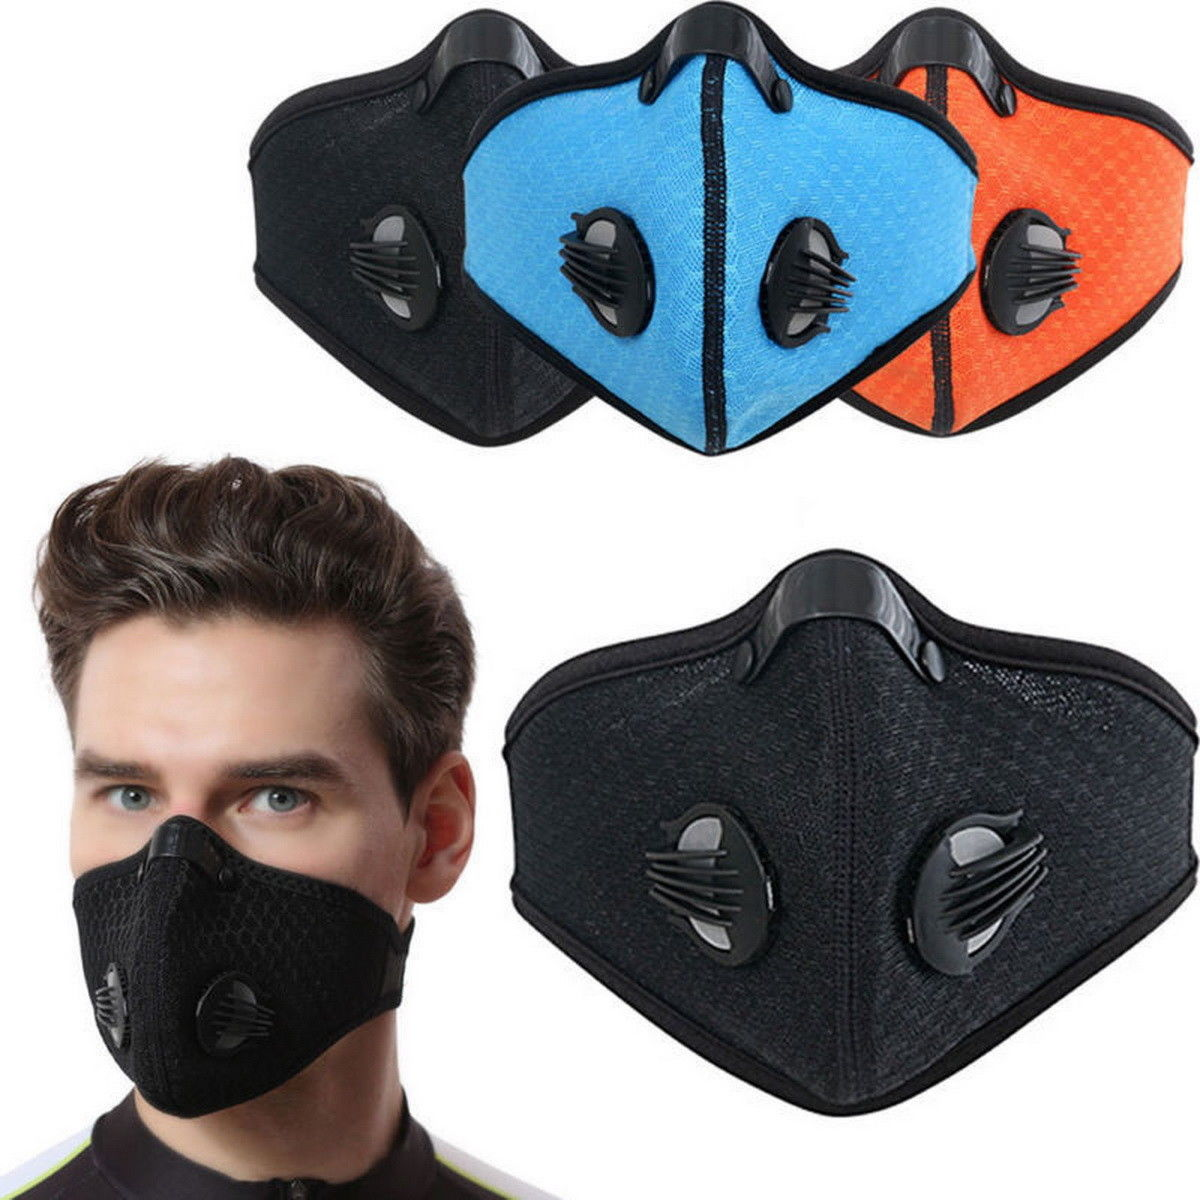 Dustproof Mask Elastic Activated Carbon Riding Half Face Masks for Protective Woodworking Cycling Running Bicycle Windproof